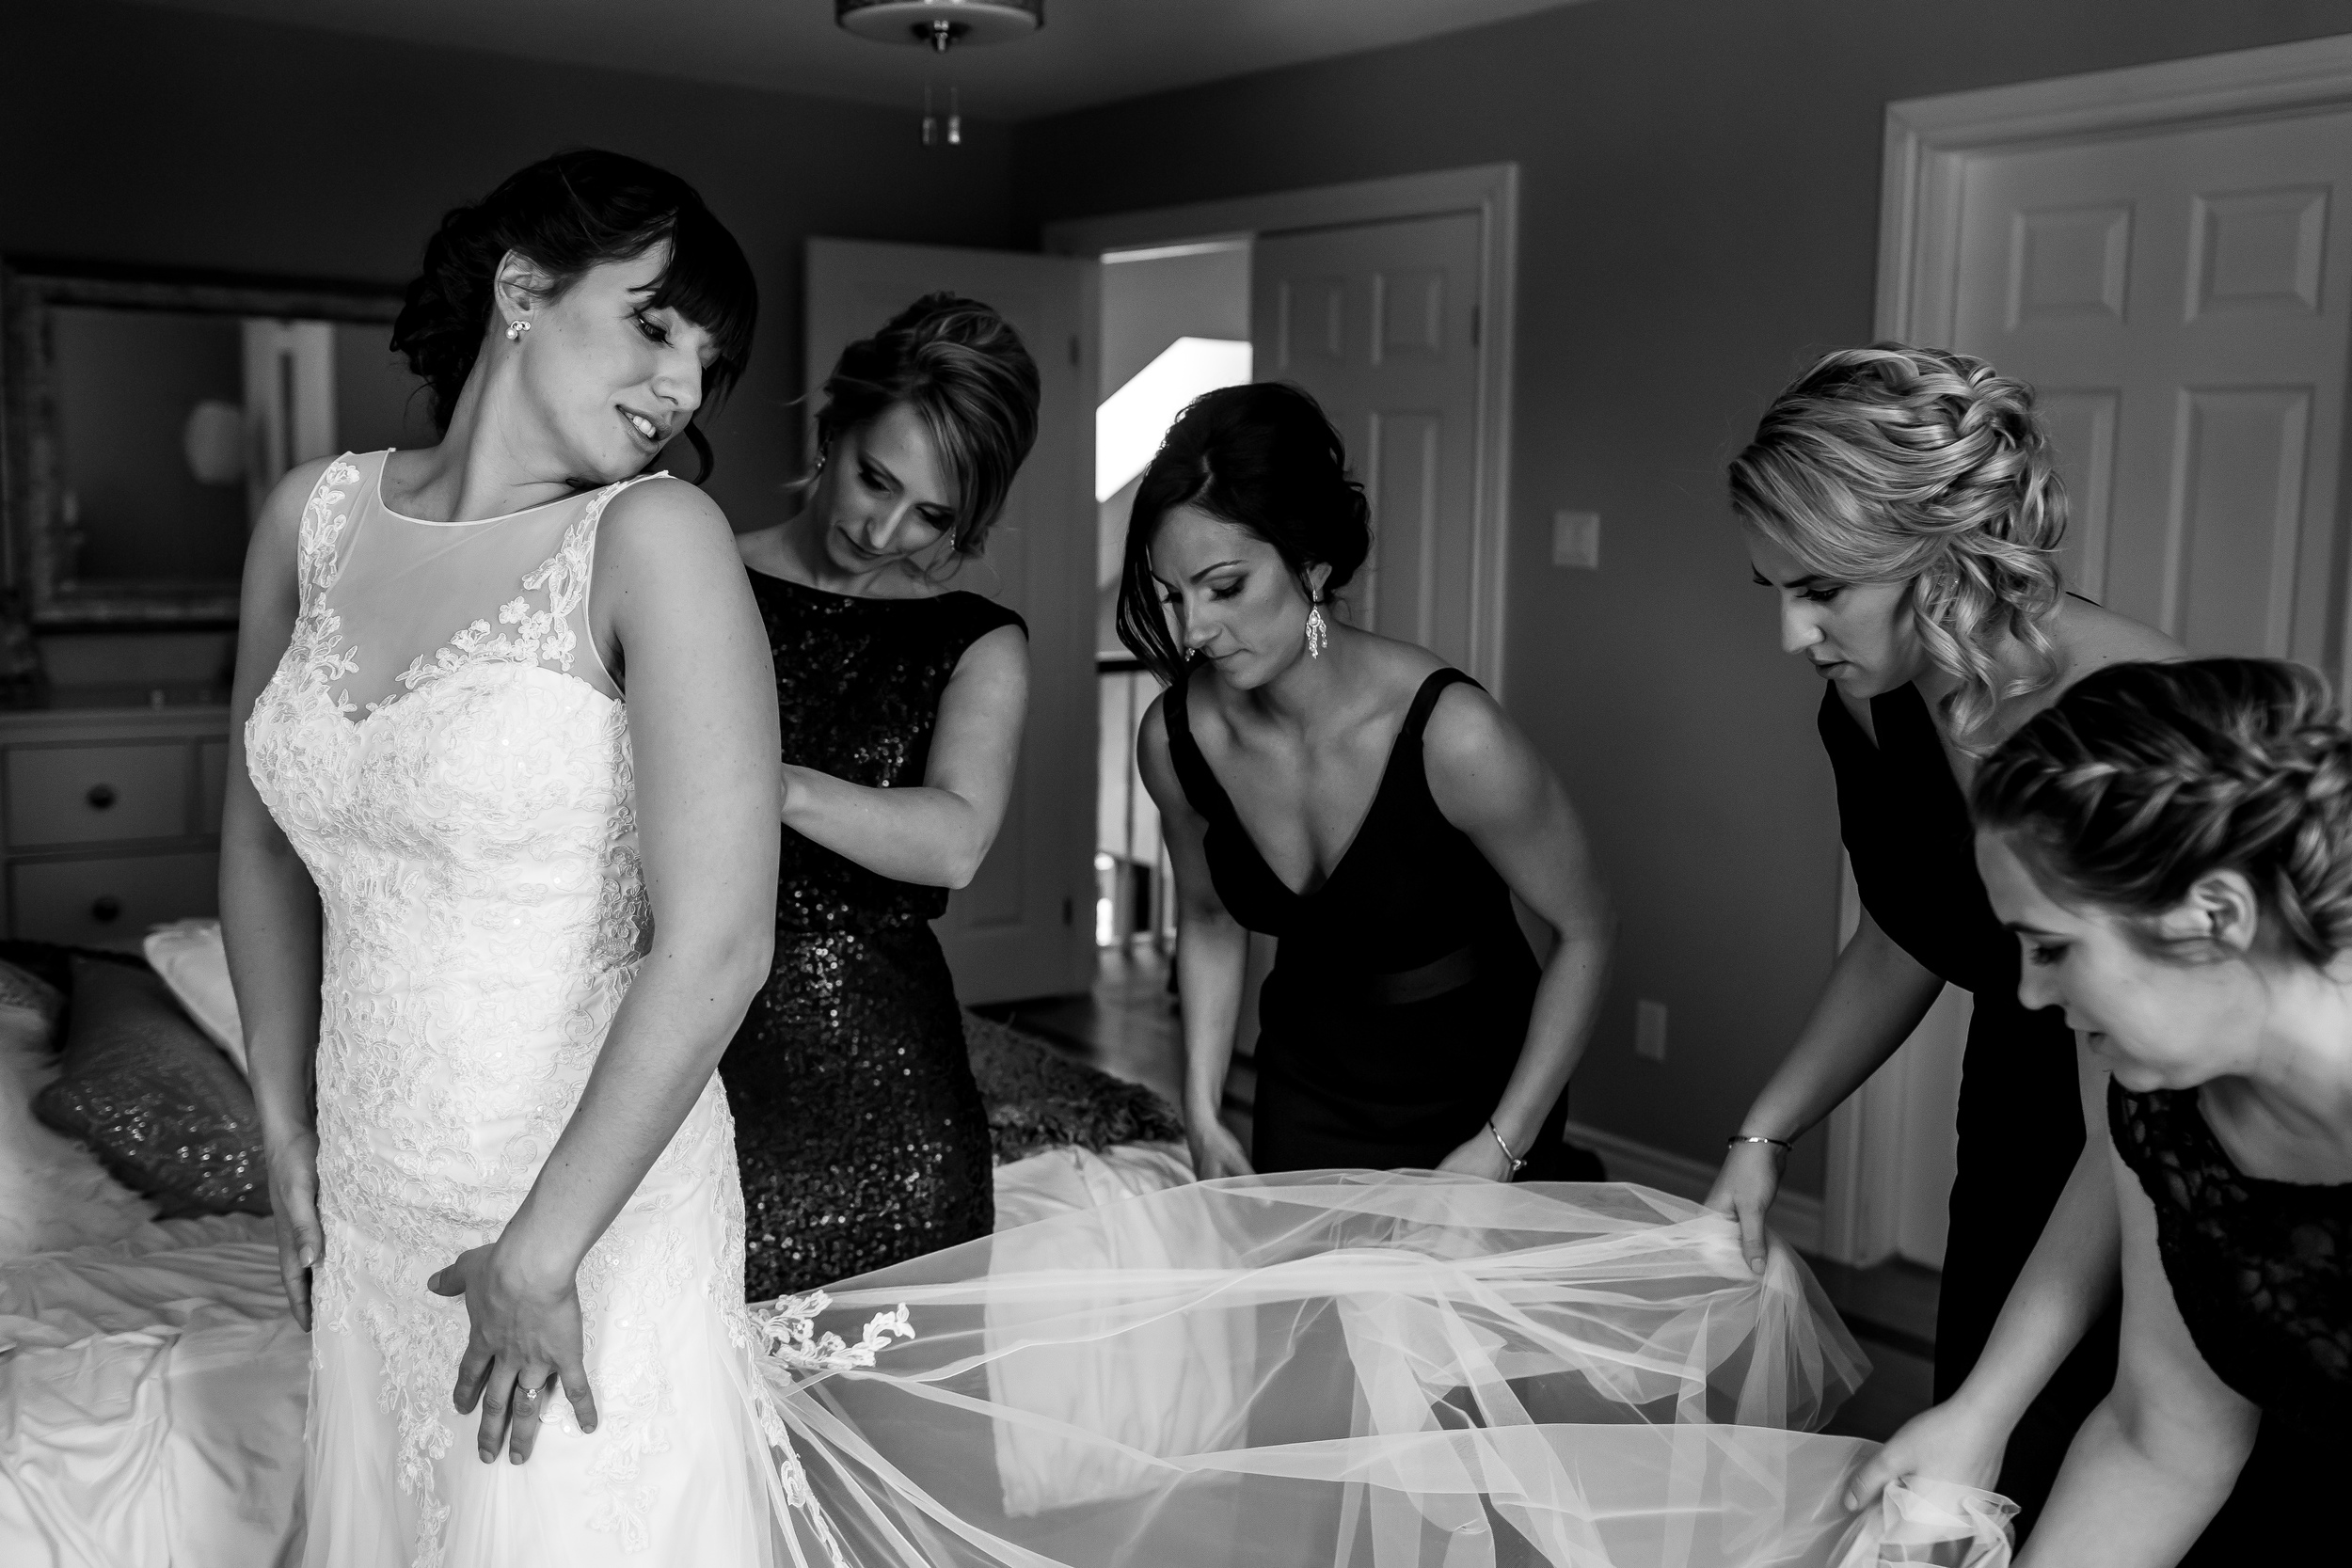 The bridal party helping the bride put on her dress